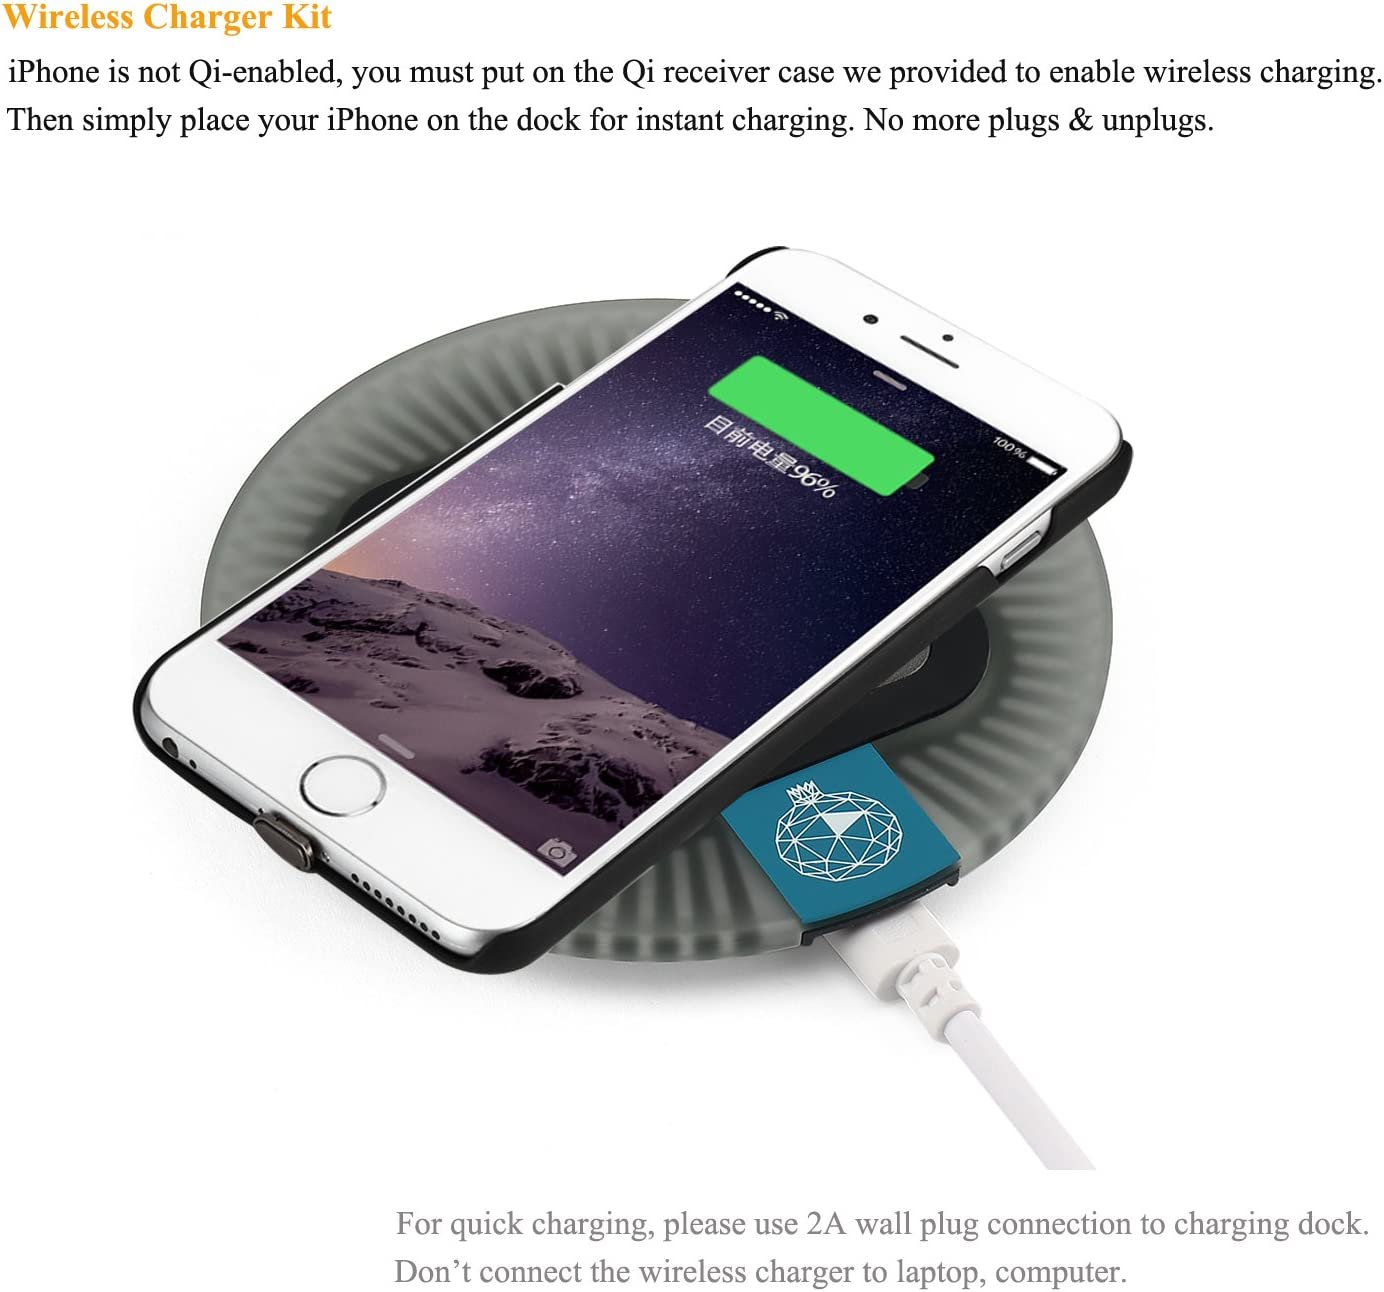 Sleep-Friendly Qi Wireless Charger Kit Compatible for iPhone 6 // iPhone 6S Wireless Charging Pad Mat Including Wireless Charging Receiver Case and Blue//White